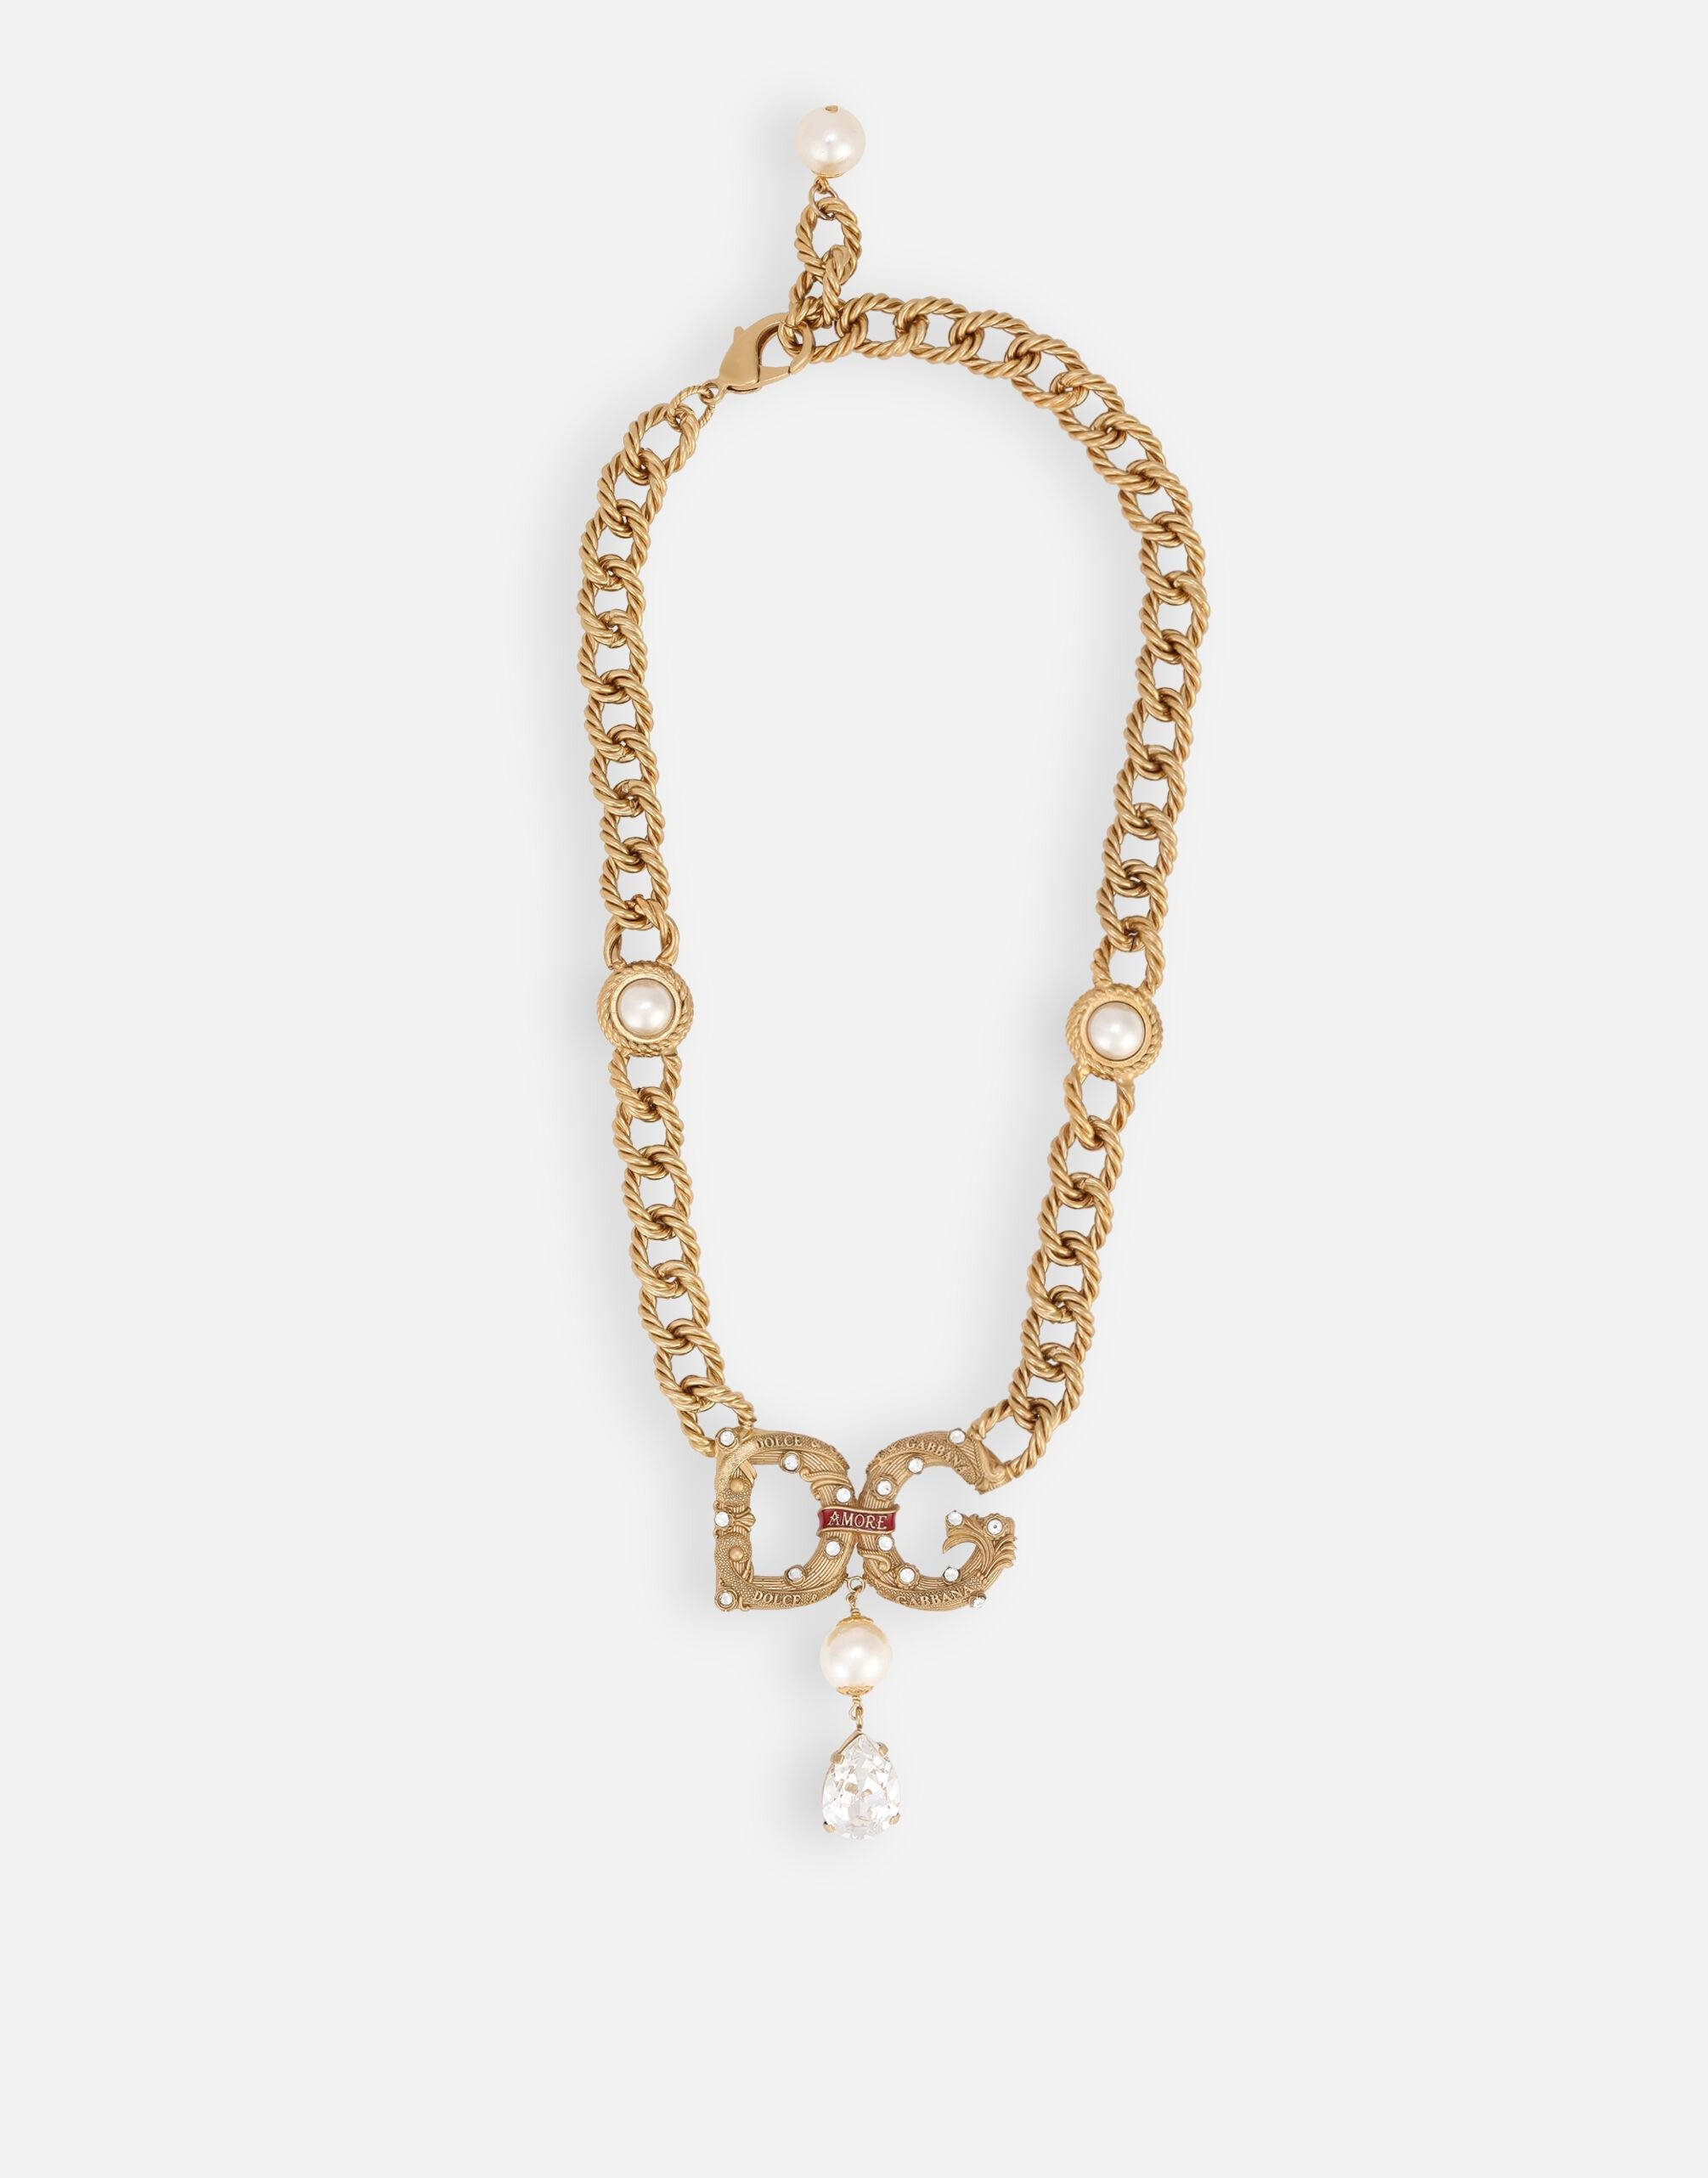 Chain necklace with DG logo and rhinestone pendants